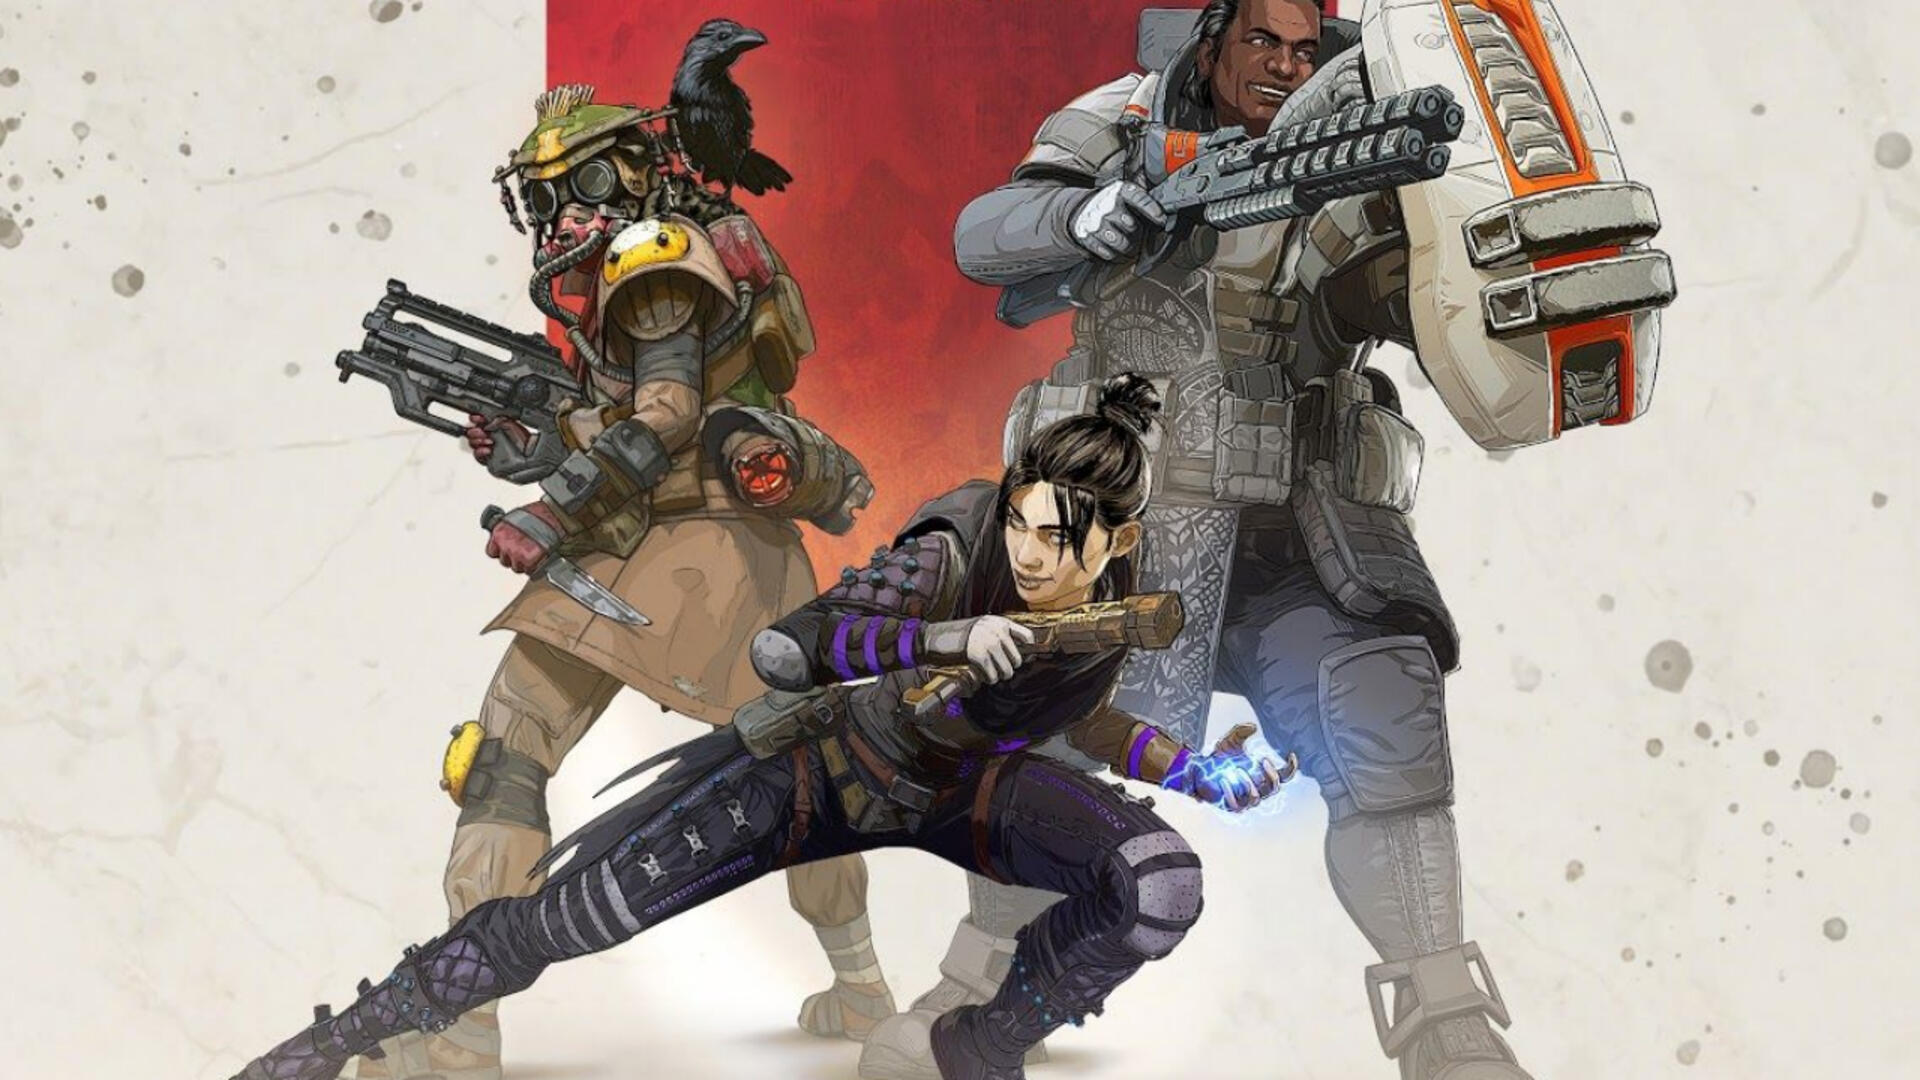 Apex Legends, EA's Free-To-Play Titanfall Battle Royale Game